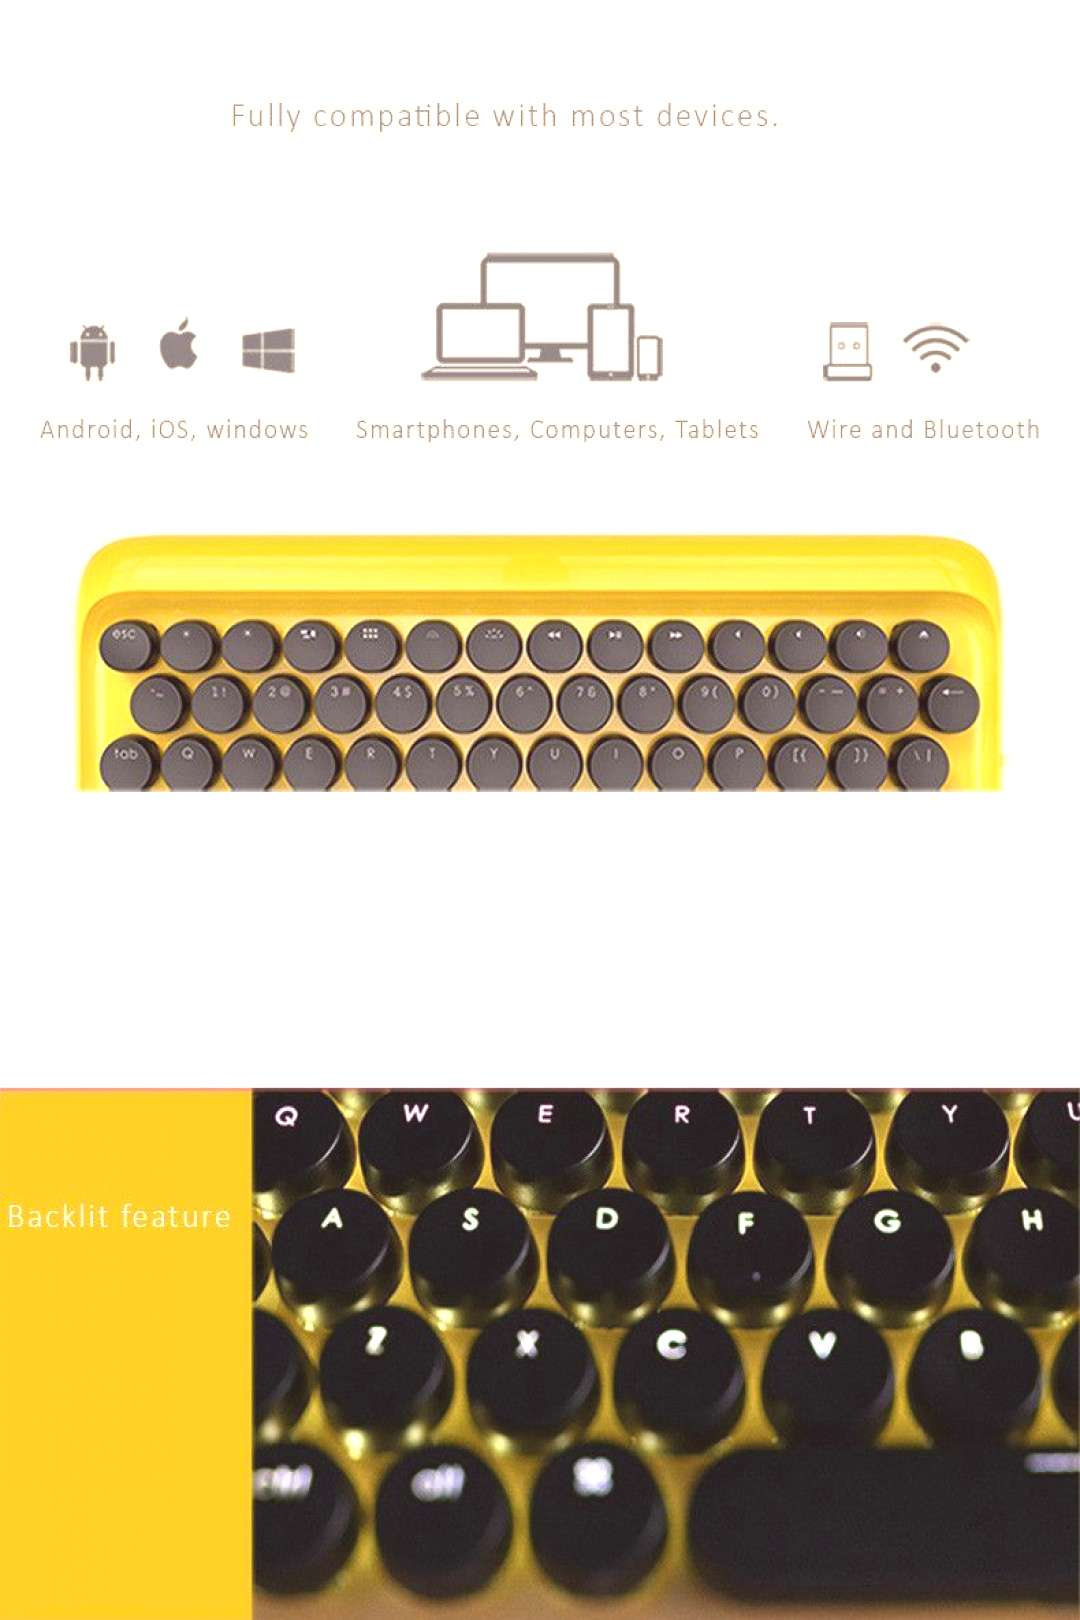 Lofree Retro mechanical backlit keyboard design with modern touch. Wired and Bluetooth connection,